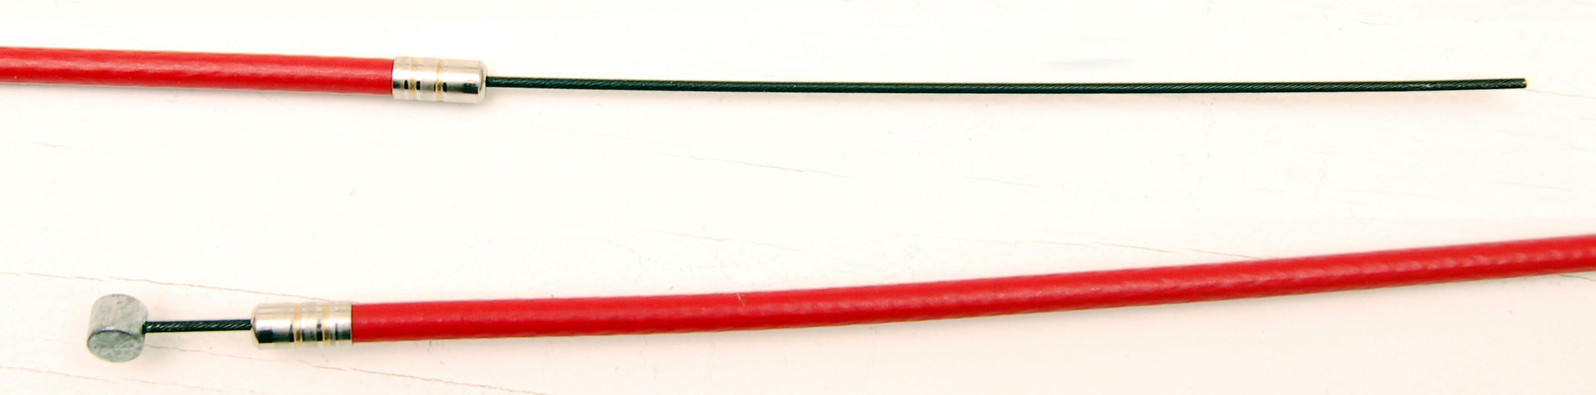 Eastern Moray Brake Cable  eastern-moray-bikebrake-cable-red-12.jpg